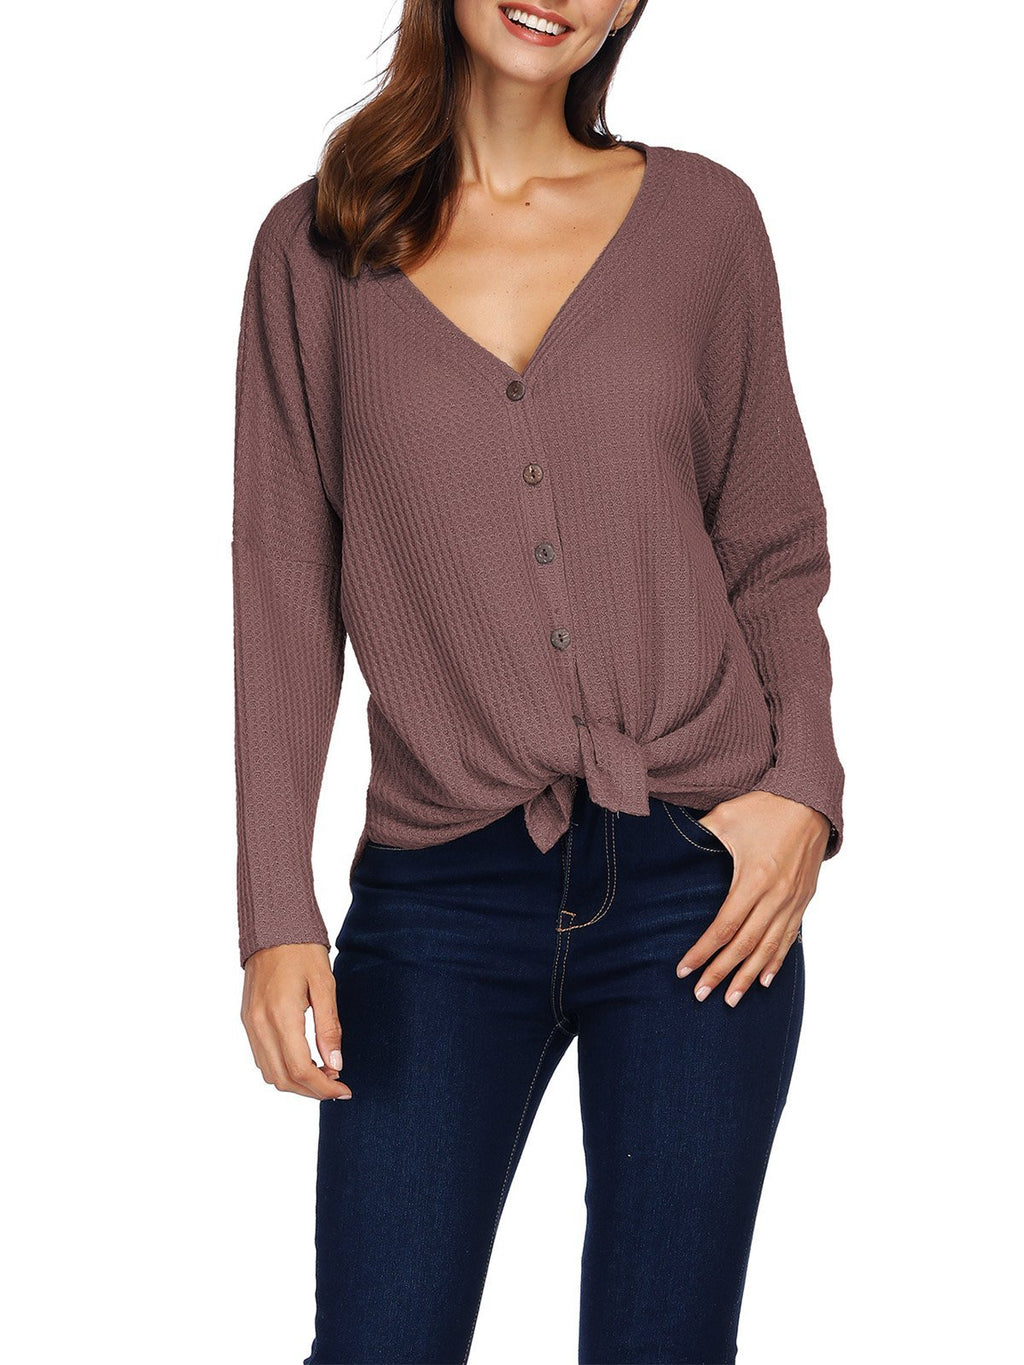 Knitted Irregular Solid Color Button Knotted Long Sleeve Blouse - Popross